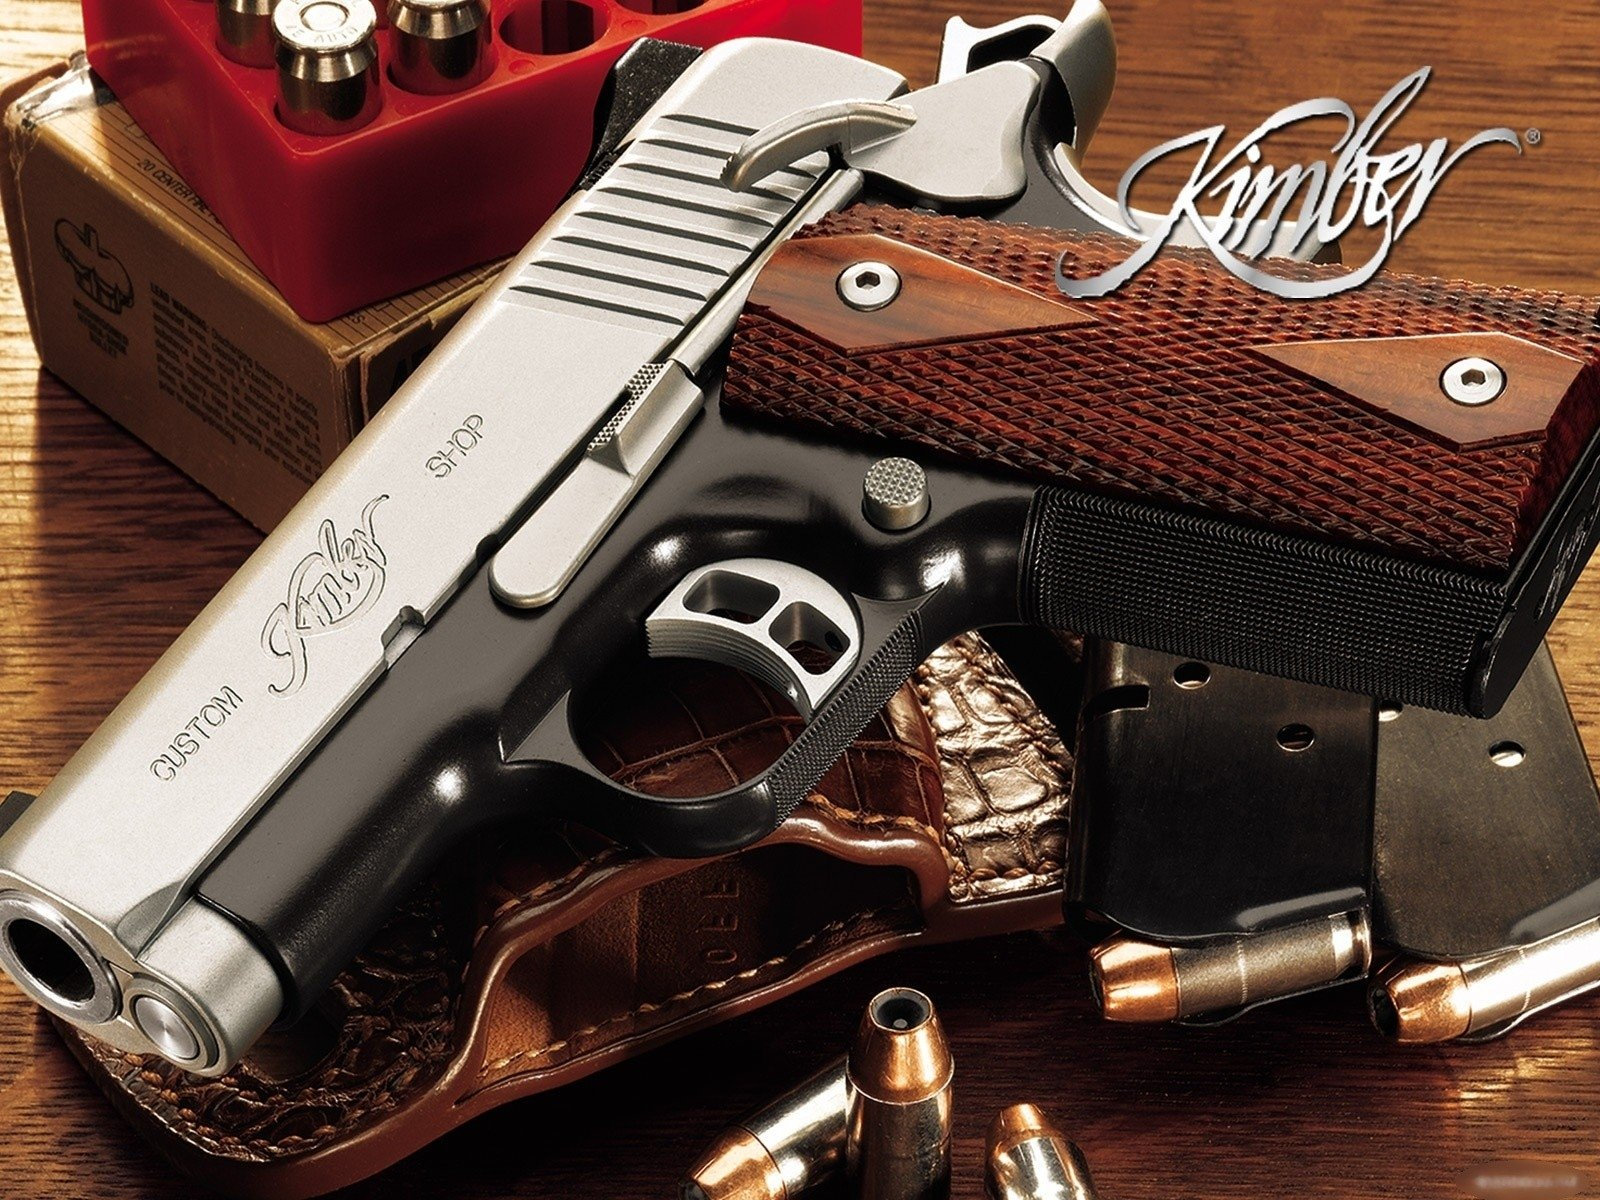 Kimber Pistol Wallpaper and Background Image 1600x1200 ID 1600x1200